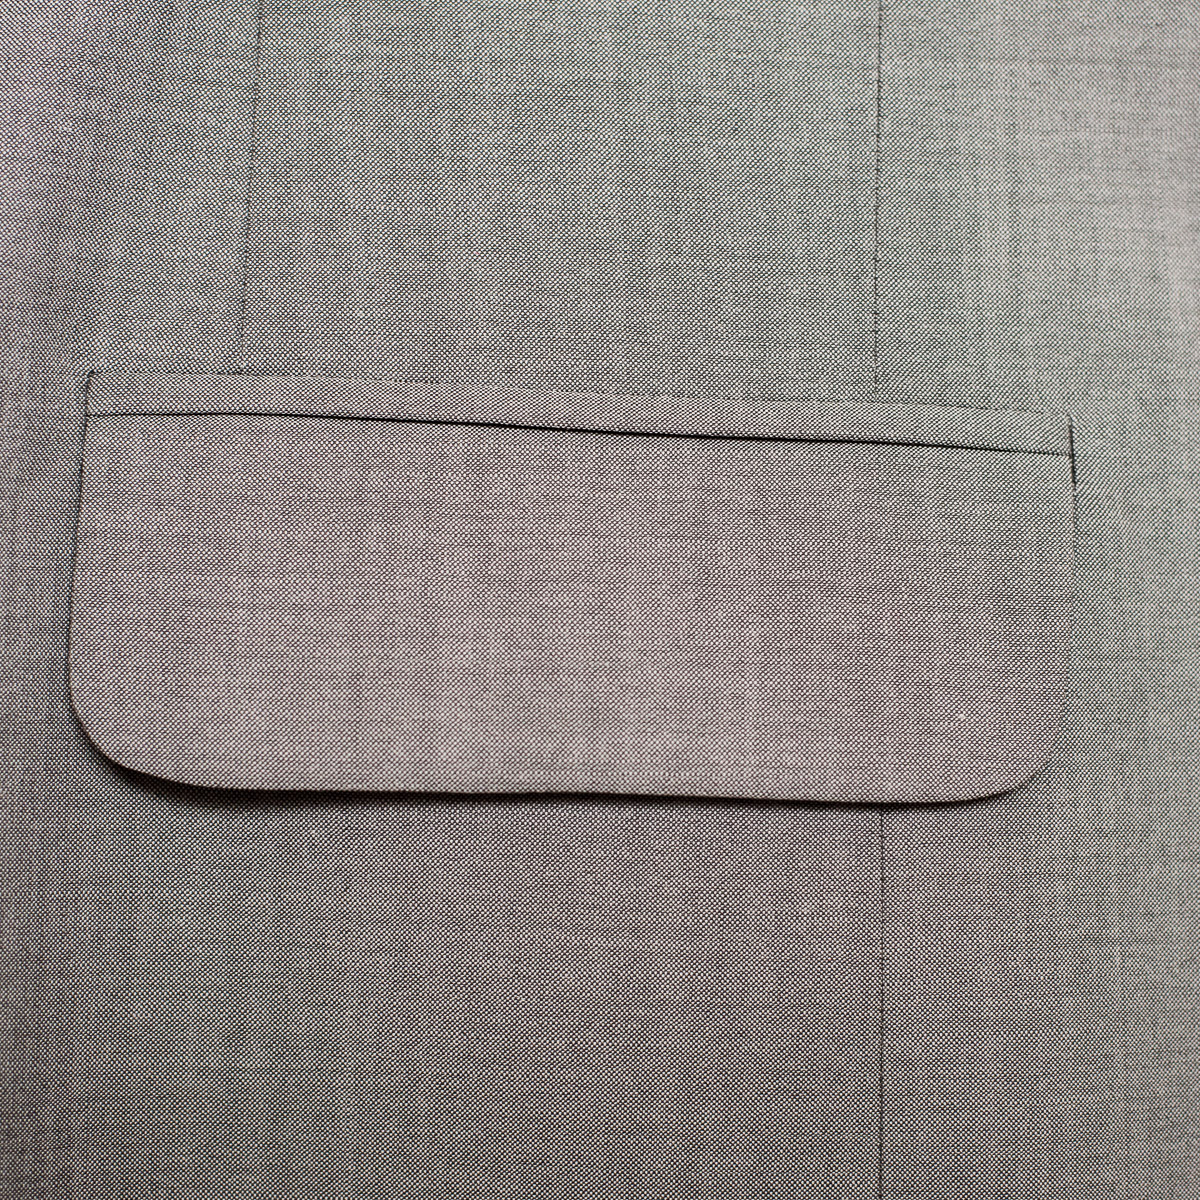 Double welted pocket with flap.